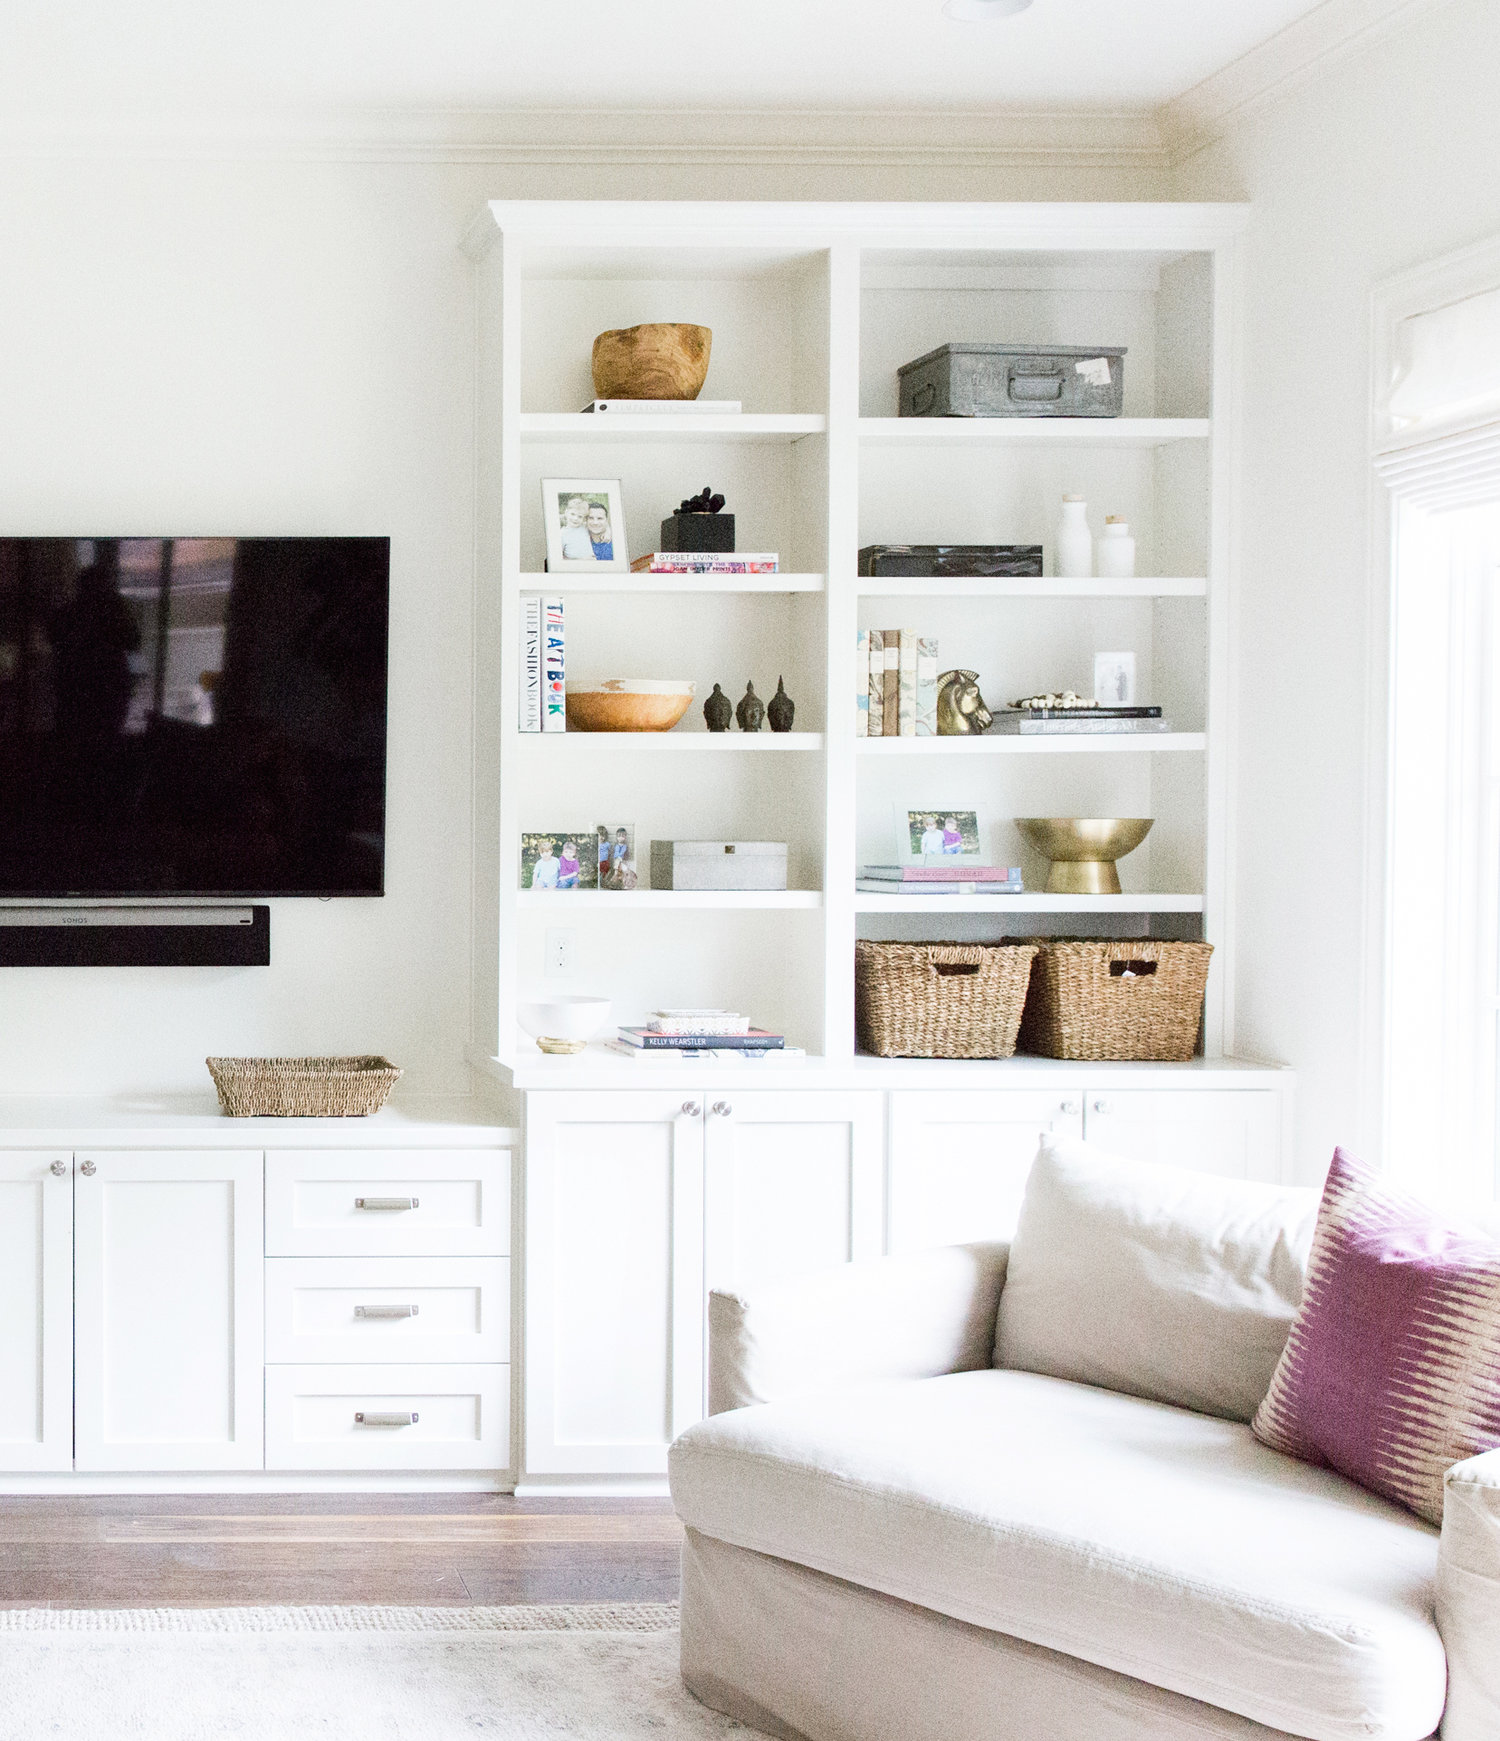 3California+Bohemian+Styled+Living+Room+with+Open+Shelf+Styling.jpg